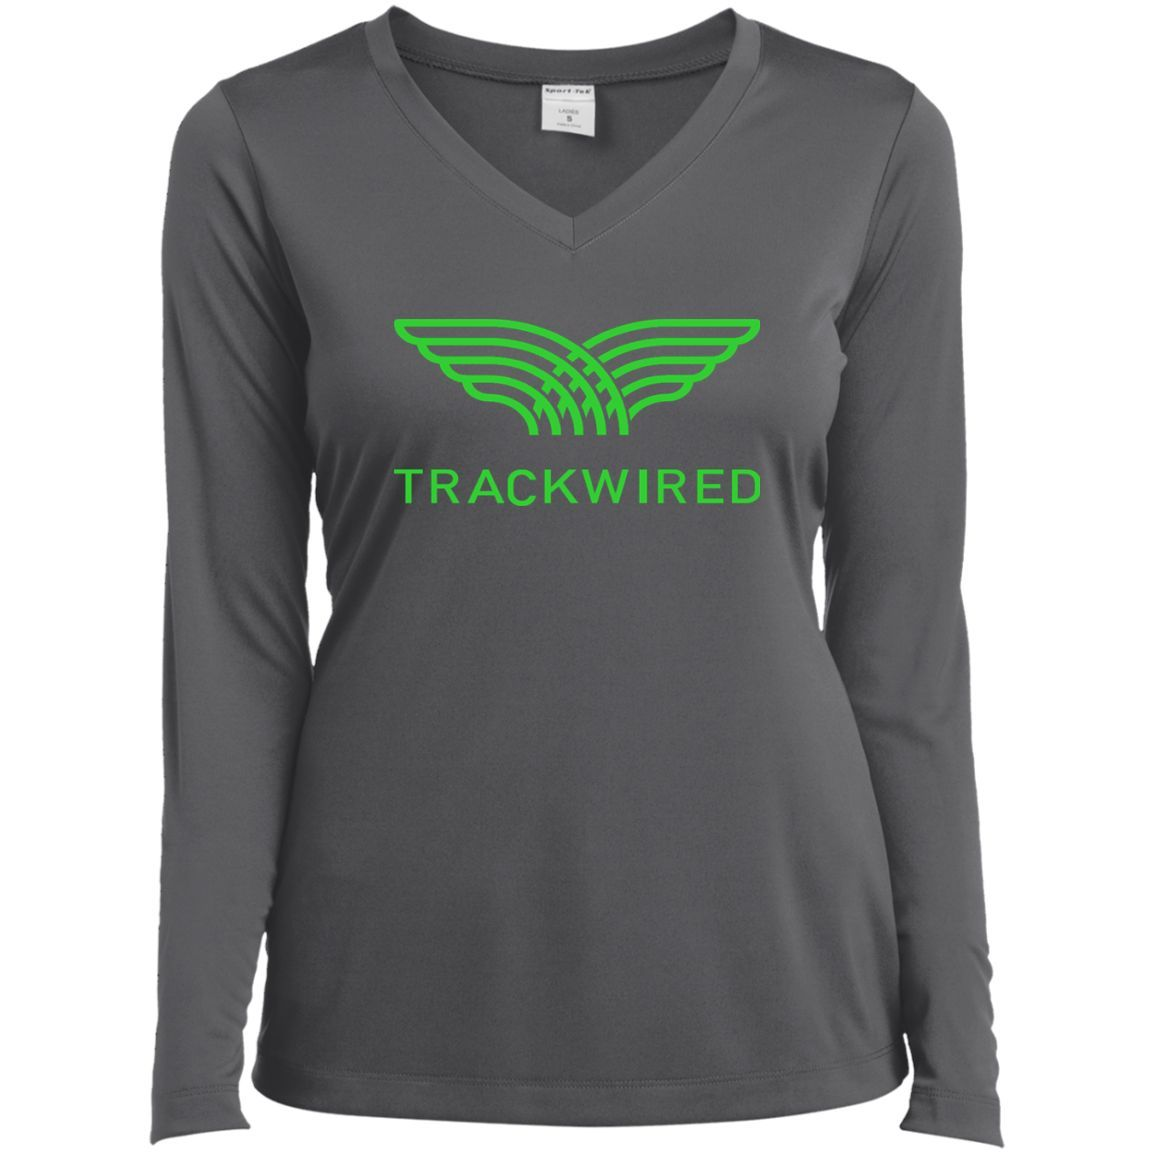 Trackwired Women's Performance Long Sleeve